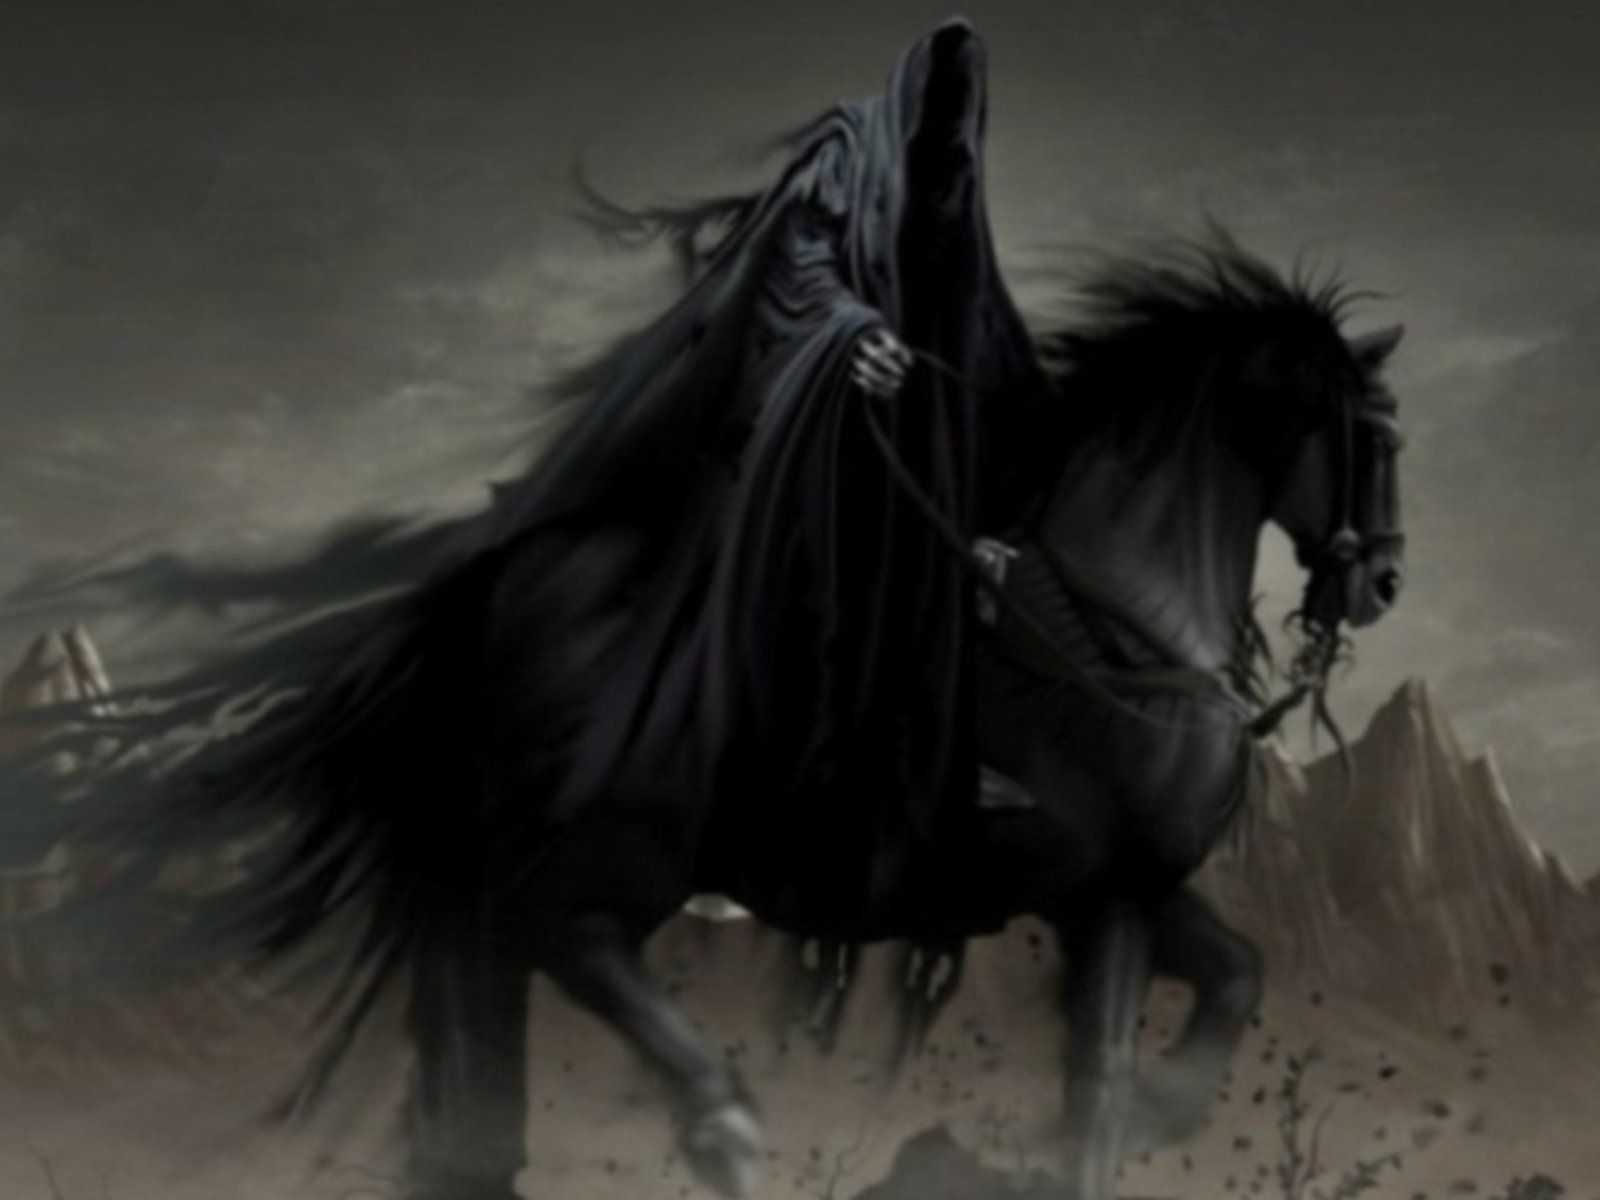 Good Wallpaper Horse Nightmare - 478915a477c2af216e81335fed64f022  Perfect Image Reference_934240.jpg